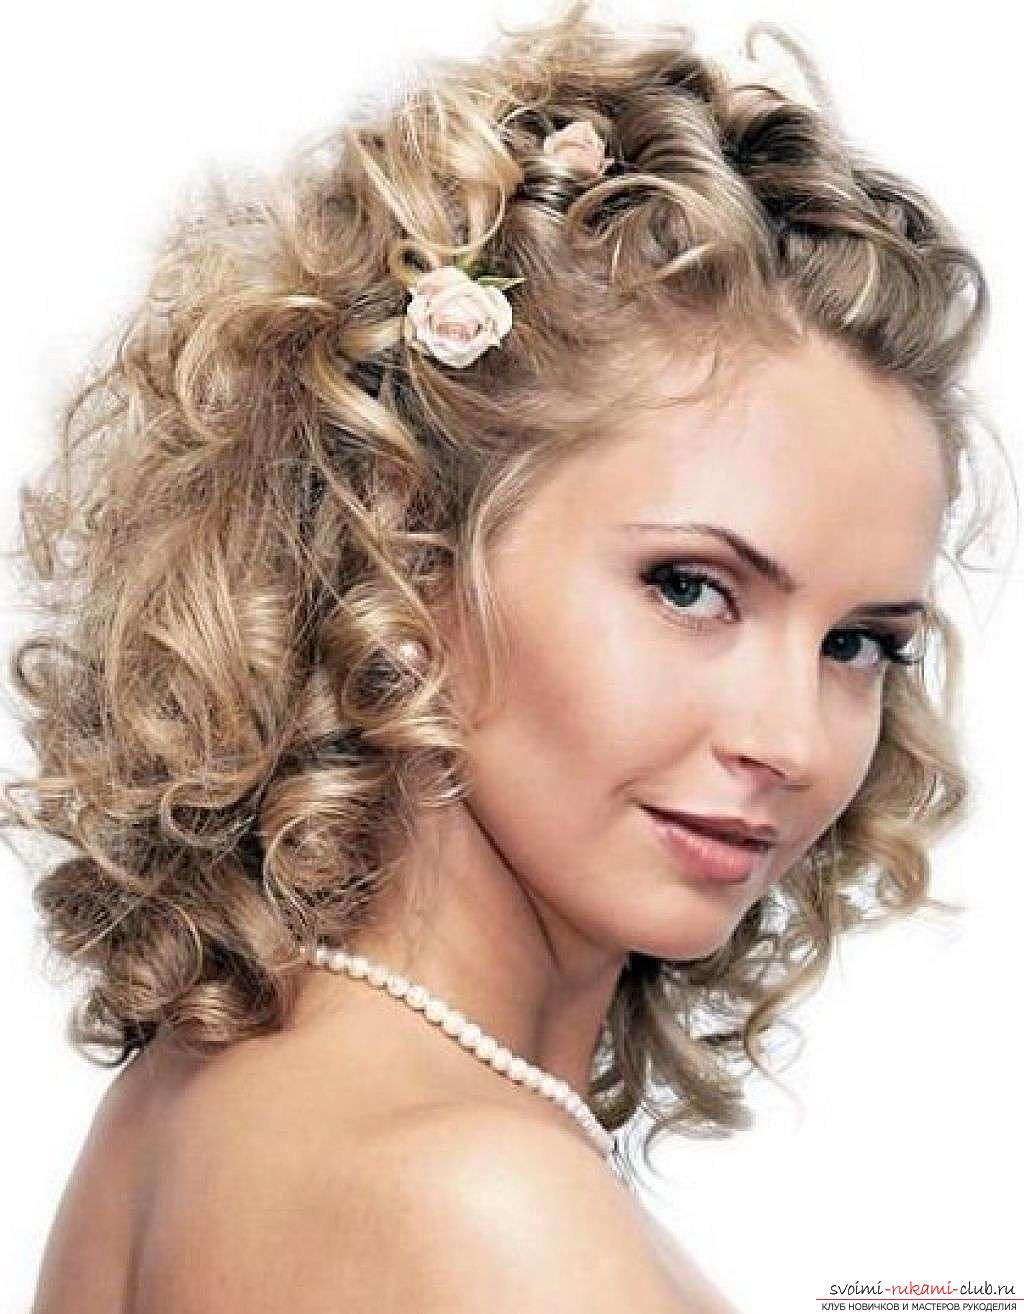 How to make a beautiful hairstyle for curly hair of medium length with your own hands ?. Photo №5